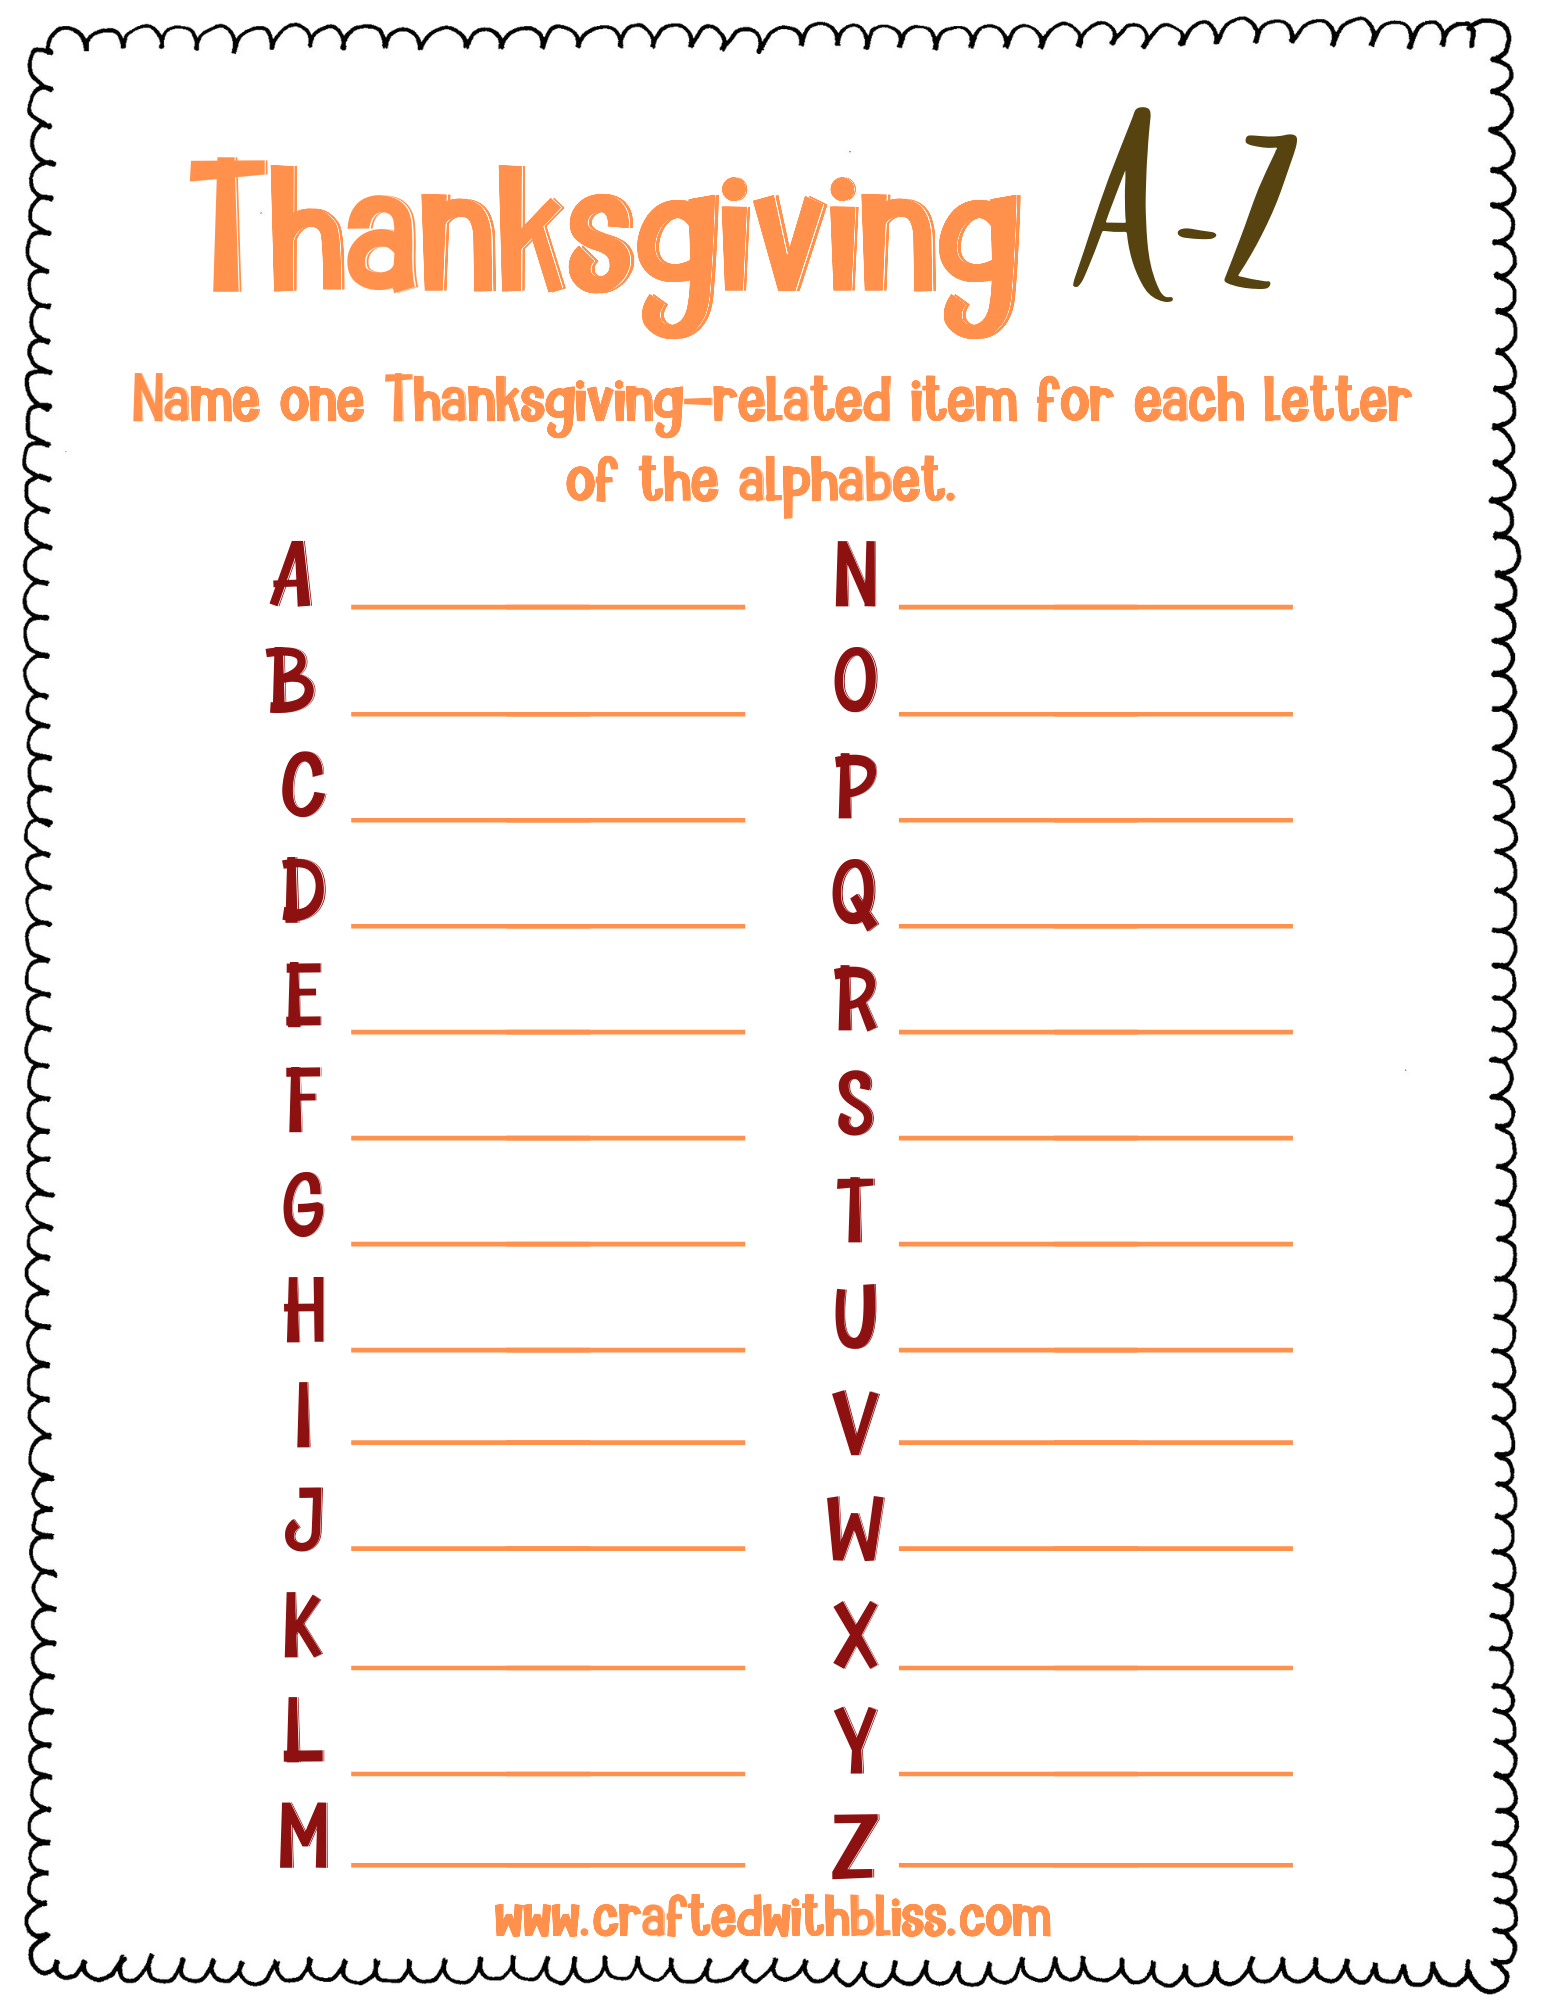 Thanksgiving Activities Thanksgiving A Z Game Thanksgiving Etsy In 2020 Thanksgiving Activities Thanksgiving Coloring Pages Free Thanksgiving Printables